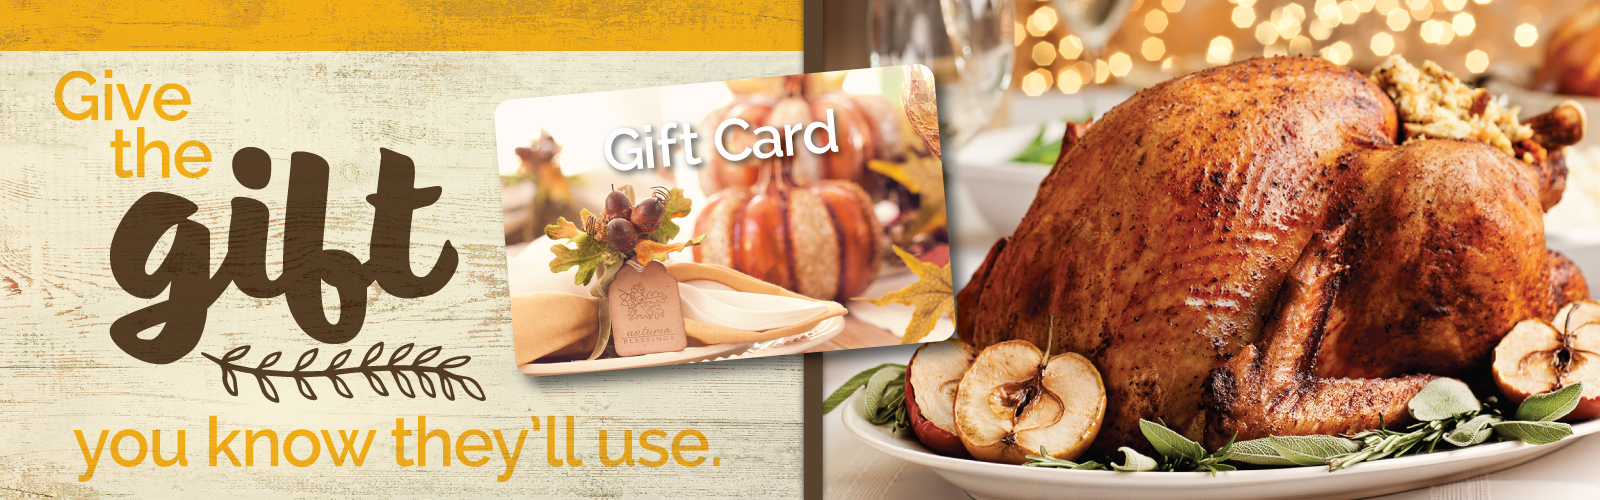 Gift Cards – A Gift You Know They'll Use.